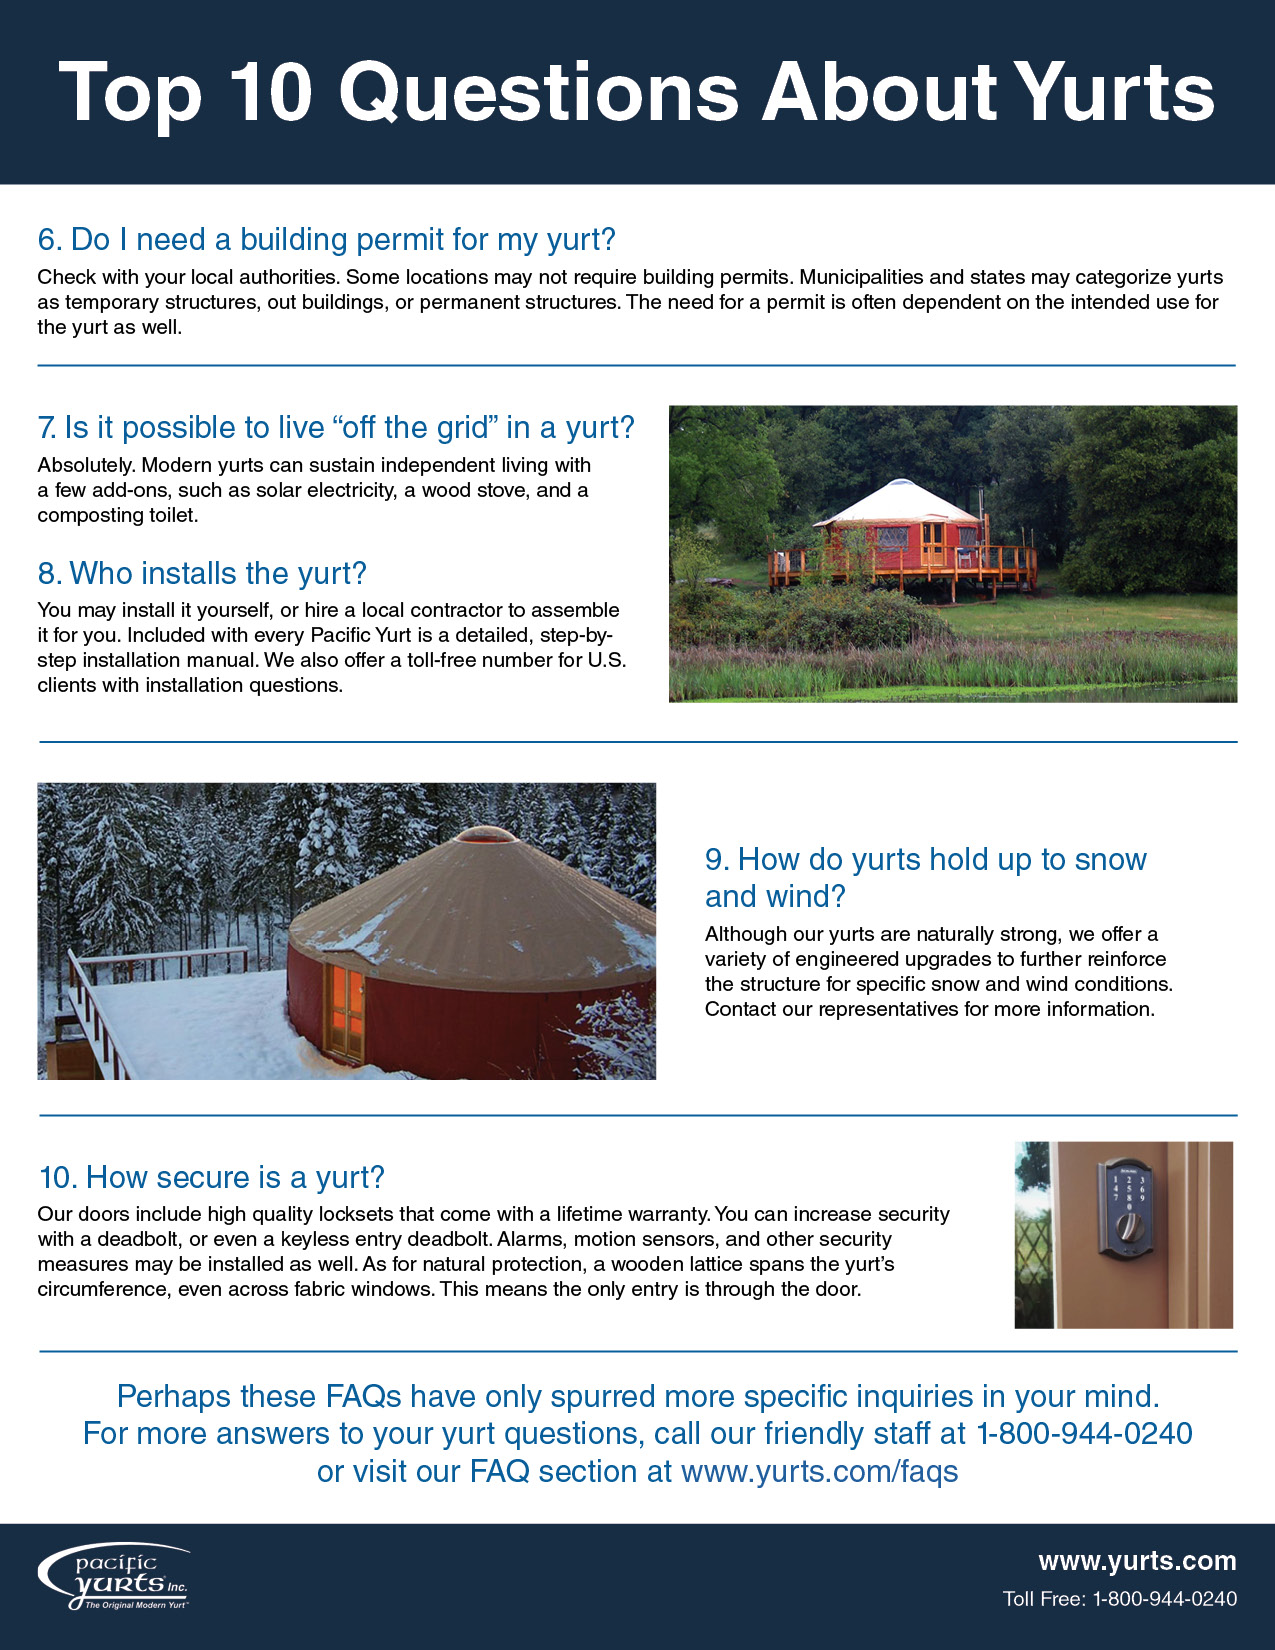 Frequently Asked Questions About Yurts